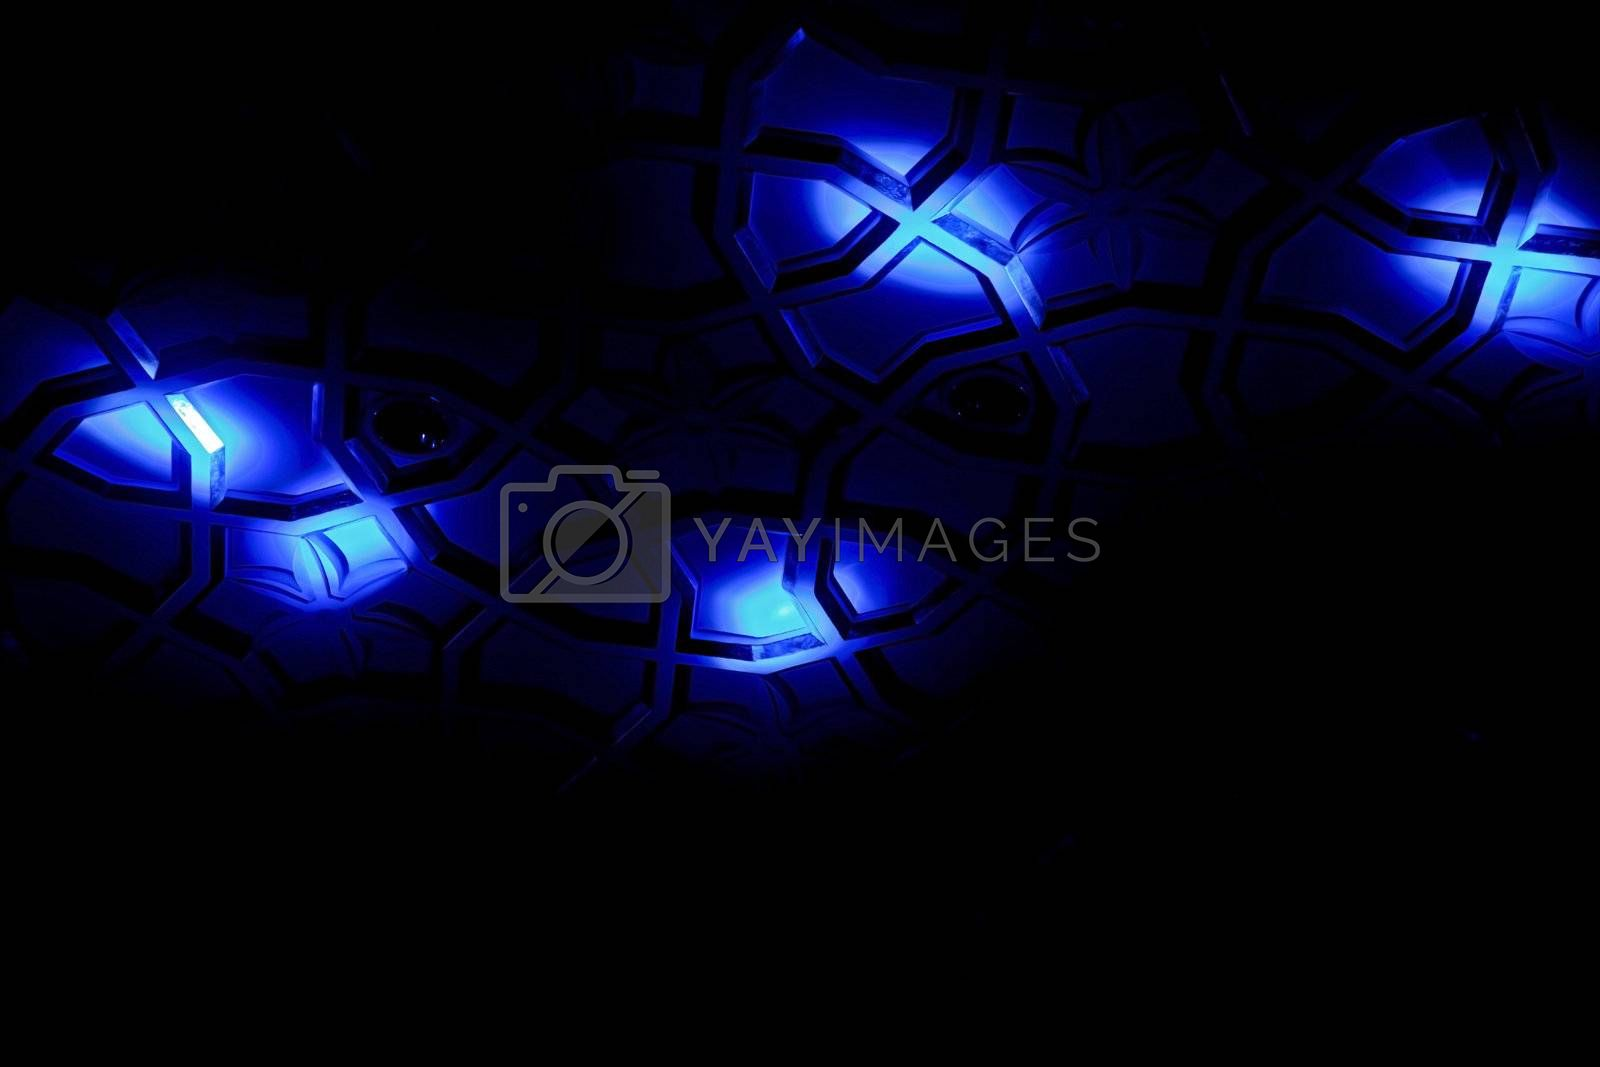 Generic shot of blue spot lights falling on a patterned surface creating shapes, angles, lines and form. Shot location was Goa India